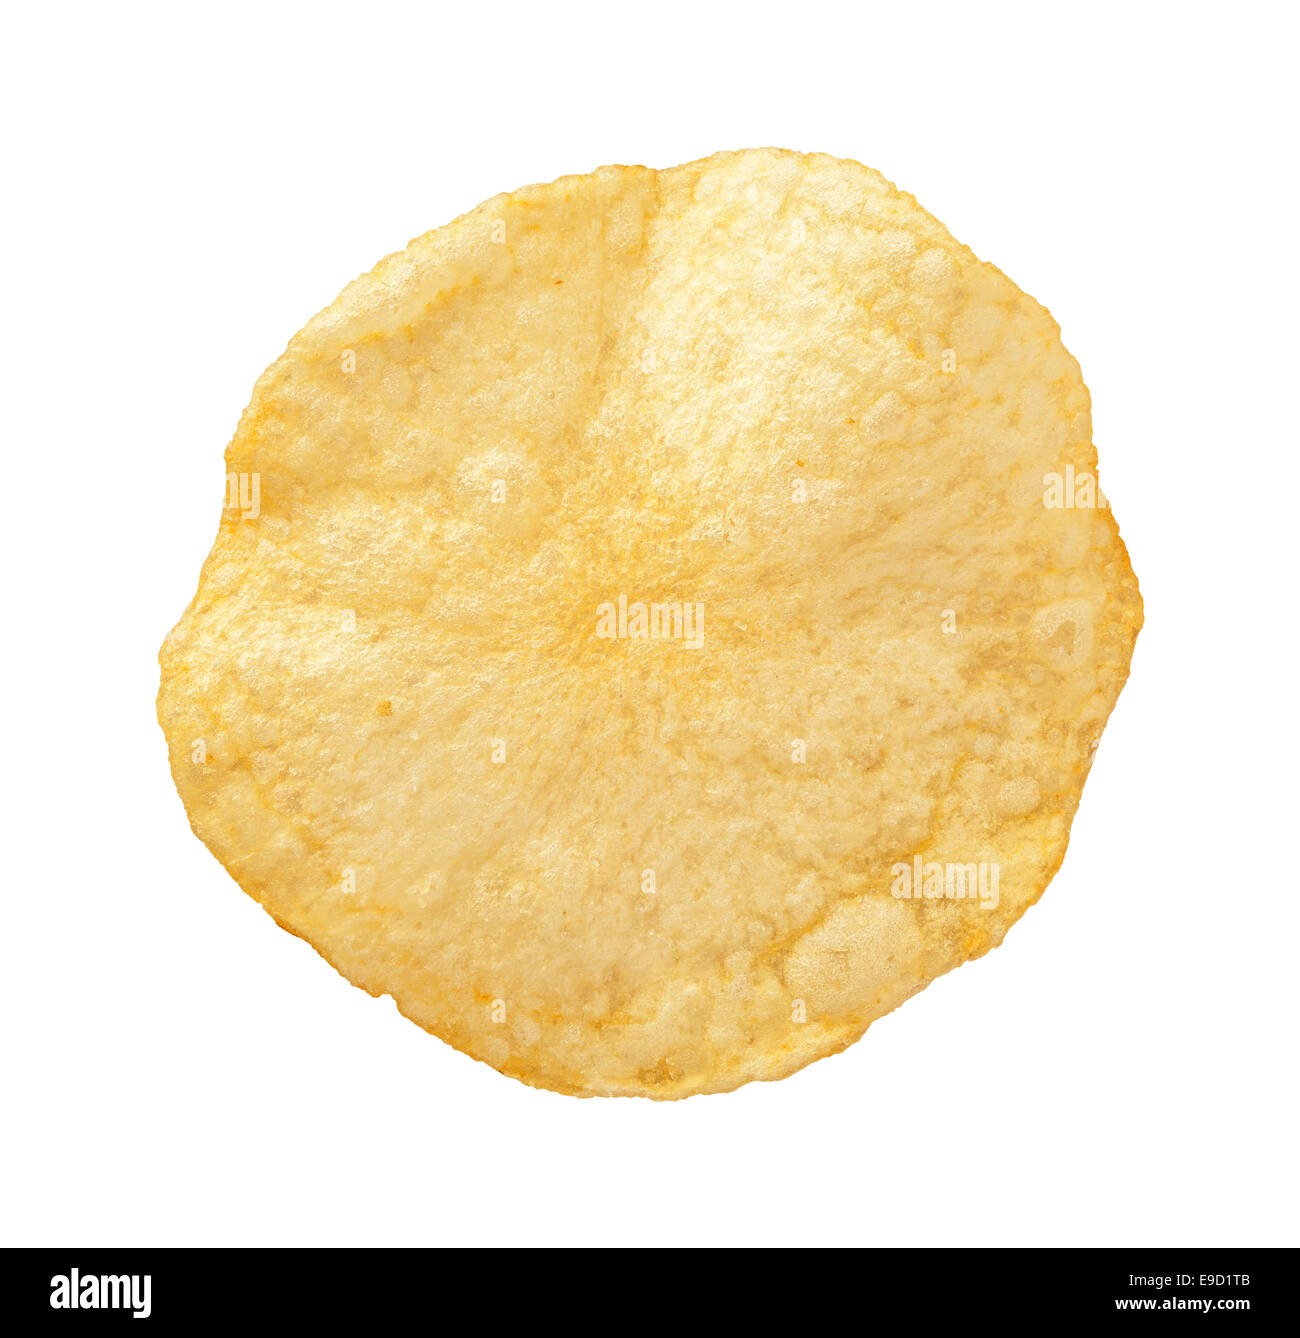 A single Potato Chip isolated on a white background - Stock Image